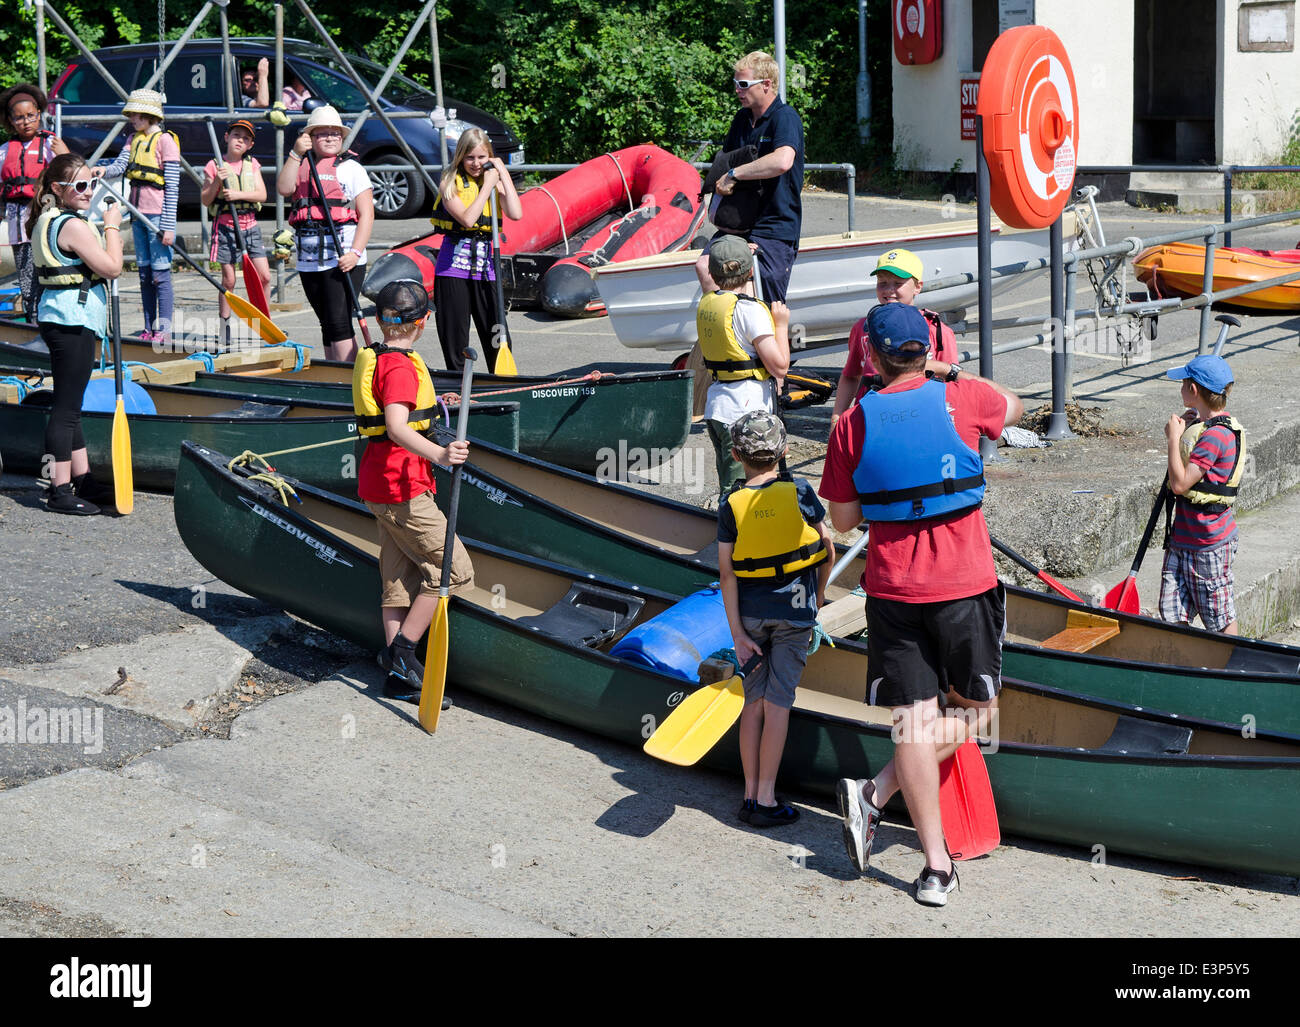 schoolchildren getting ready to canoe on the river fowey in cornwall, uk - Stock Image